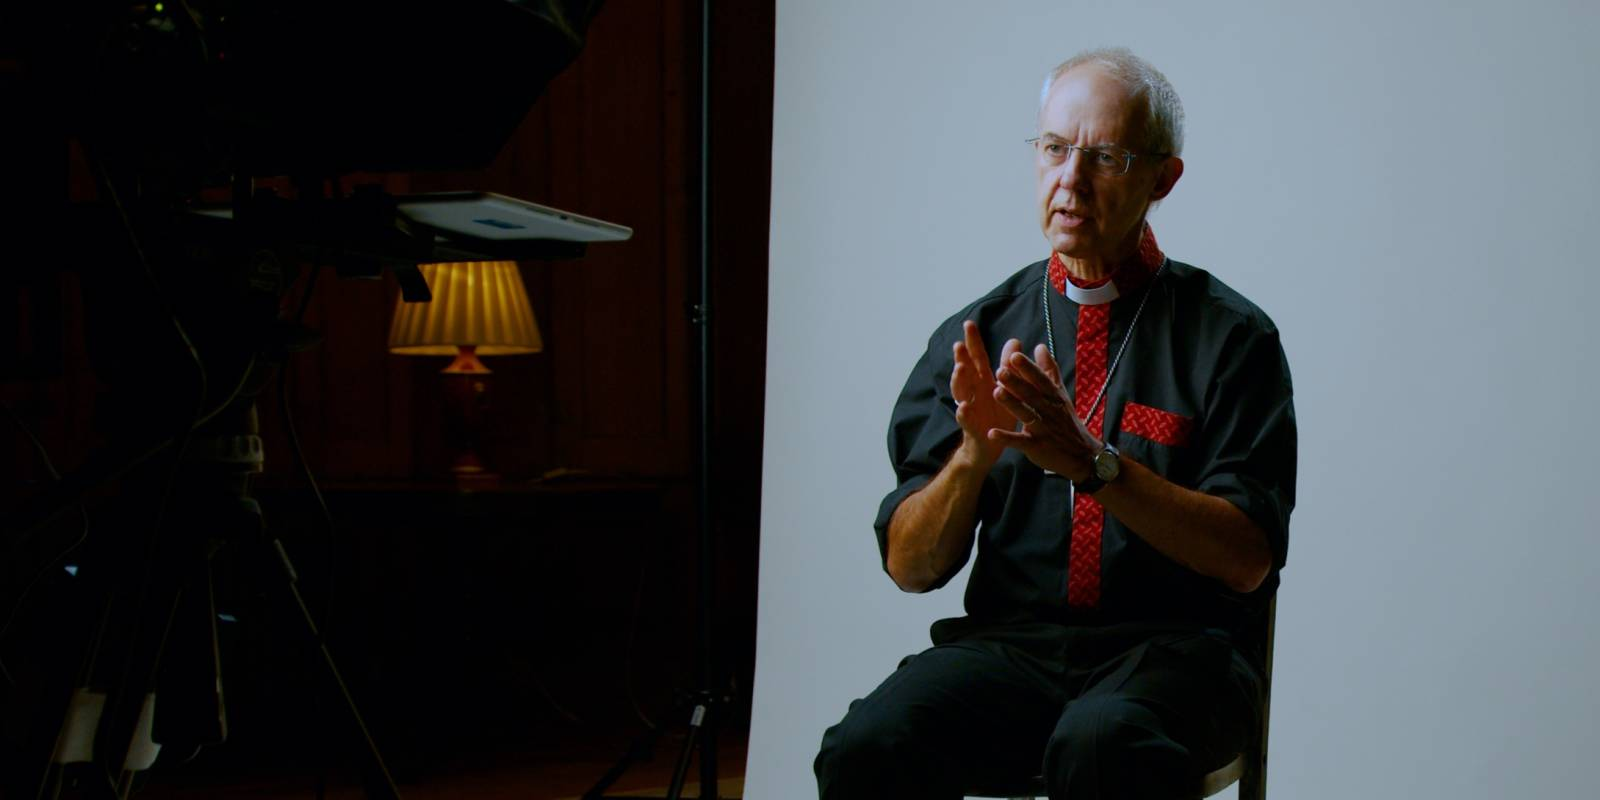 Justin Welby recording a video message